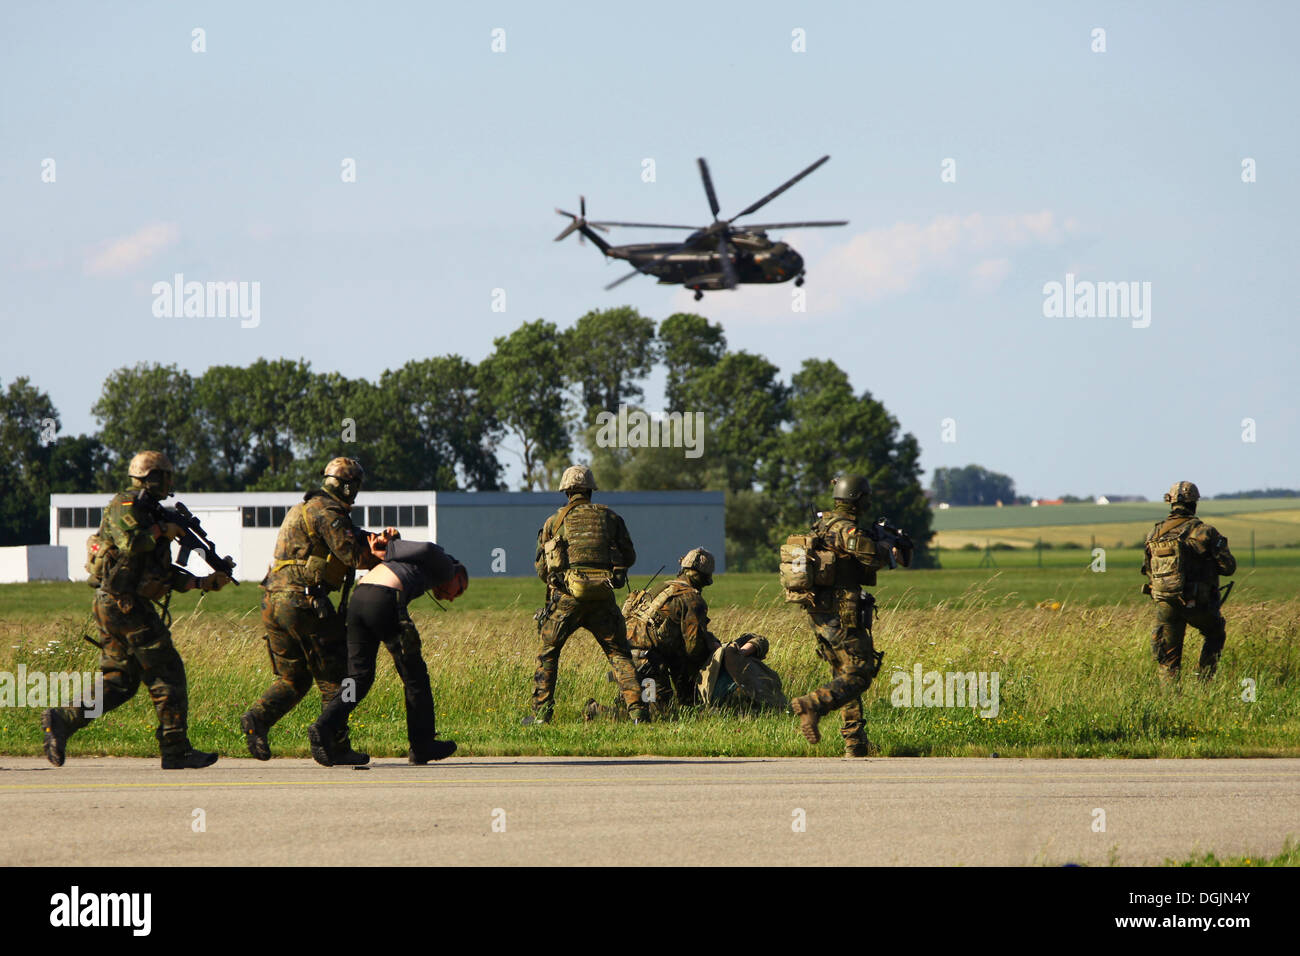 Terrorists are being arrested, a demonstration of Germany's KSK Special Forces with an SOF helicopter, Laupheim - Stock Image